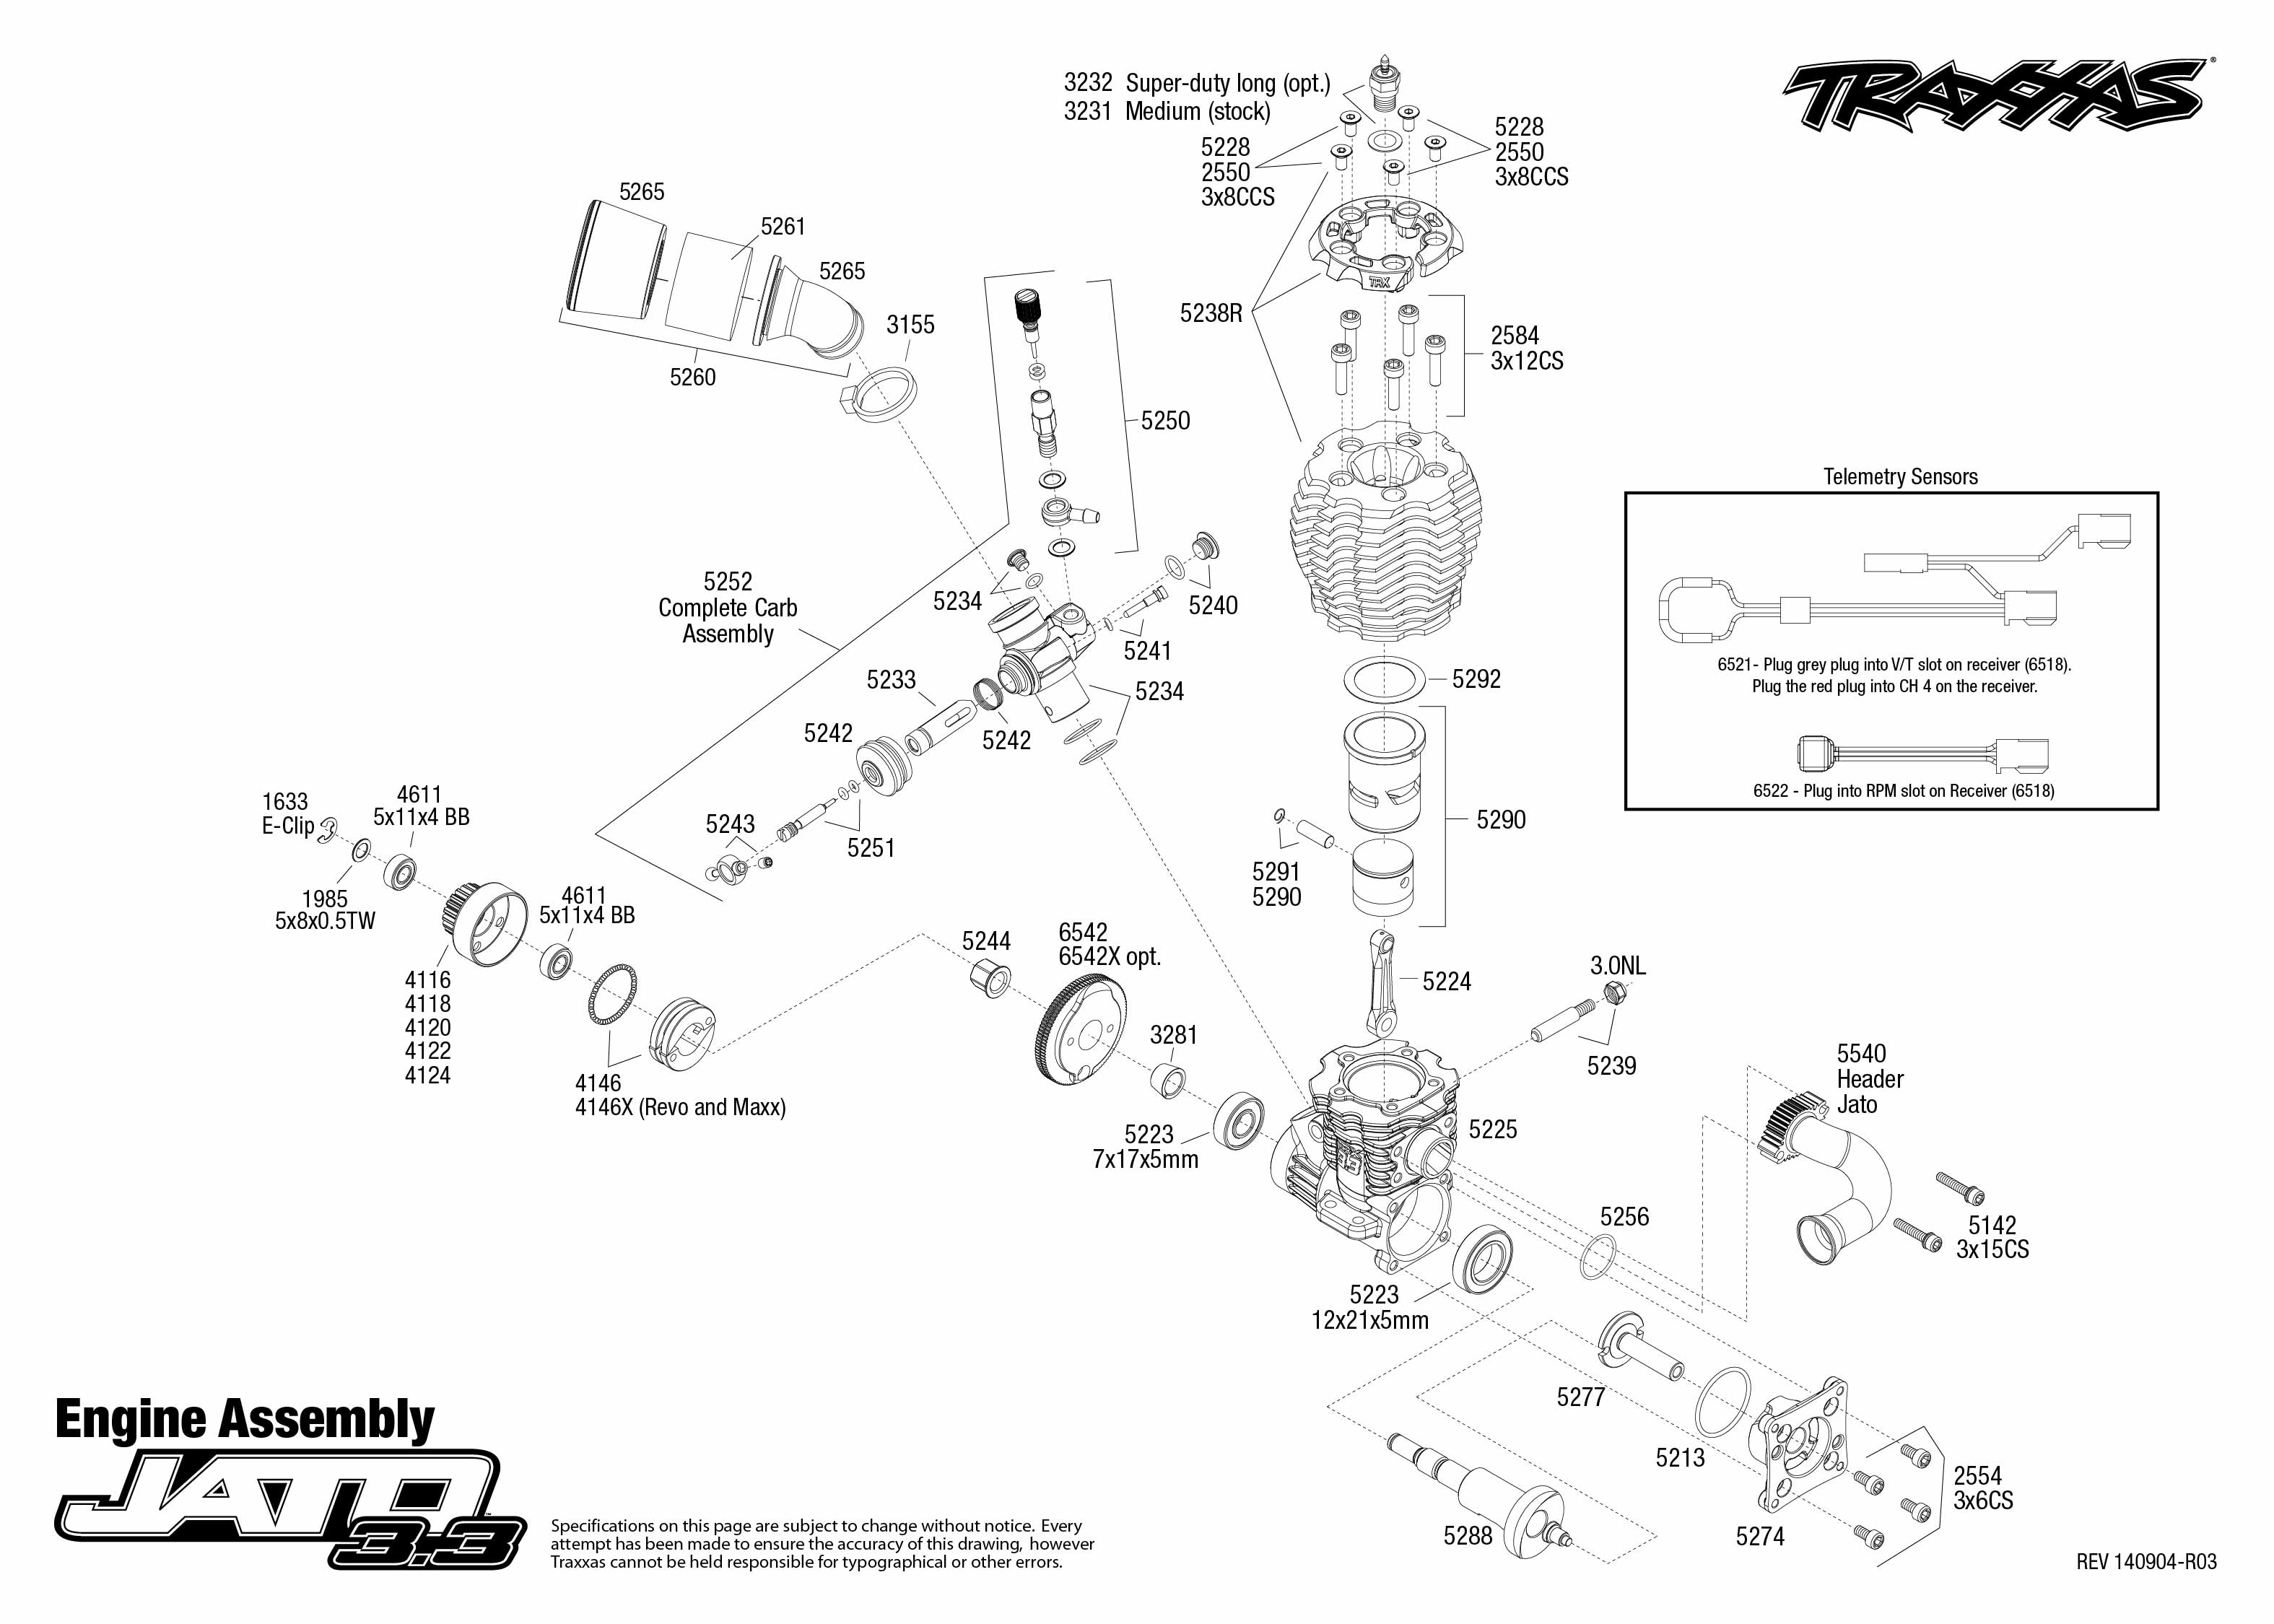 [SCHEMATICS_48IS]  Jato 3.3 (5507) Engine Assembly | Exploded View | Traxxas | Traxxas 2 5 Engine Diagram |  | Traxxas